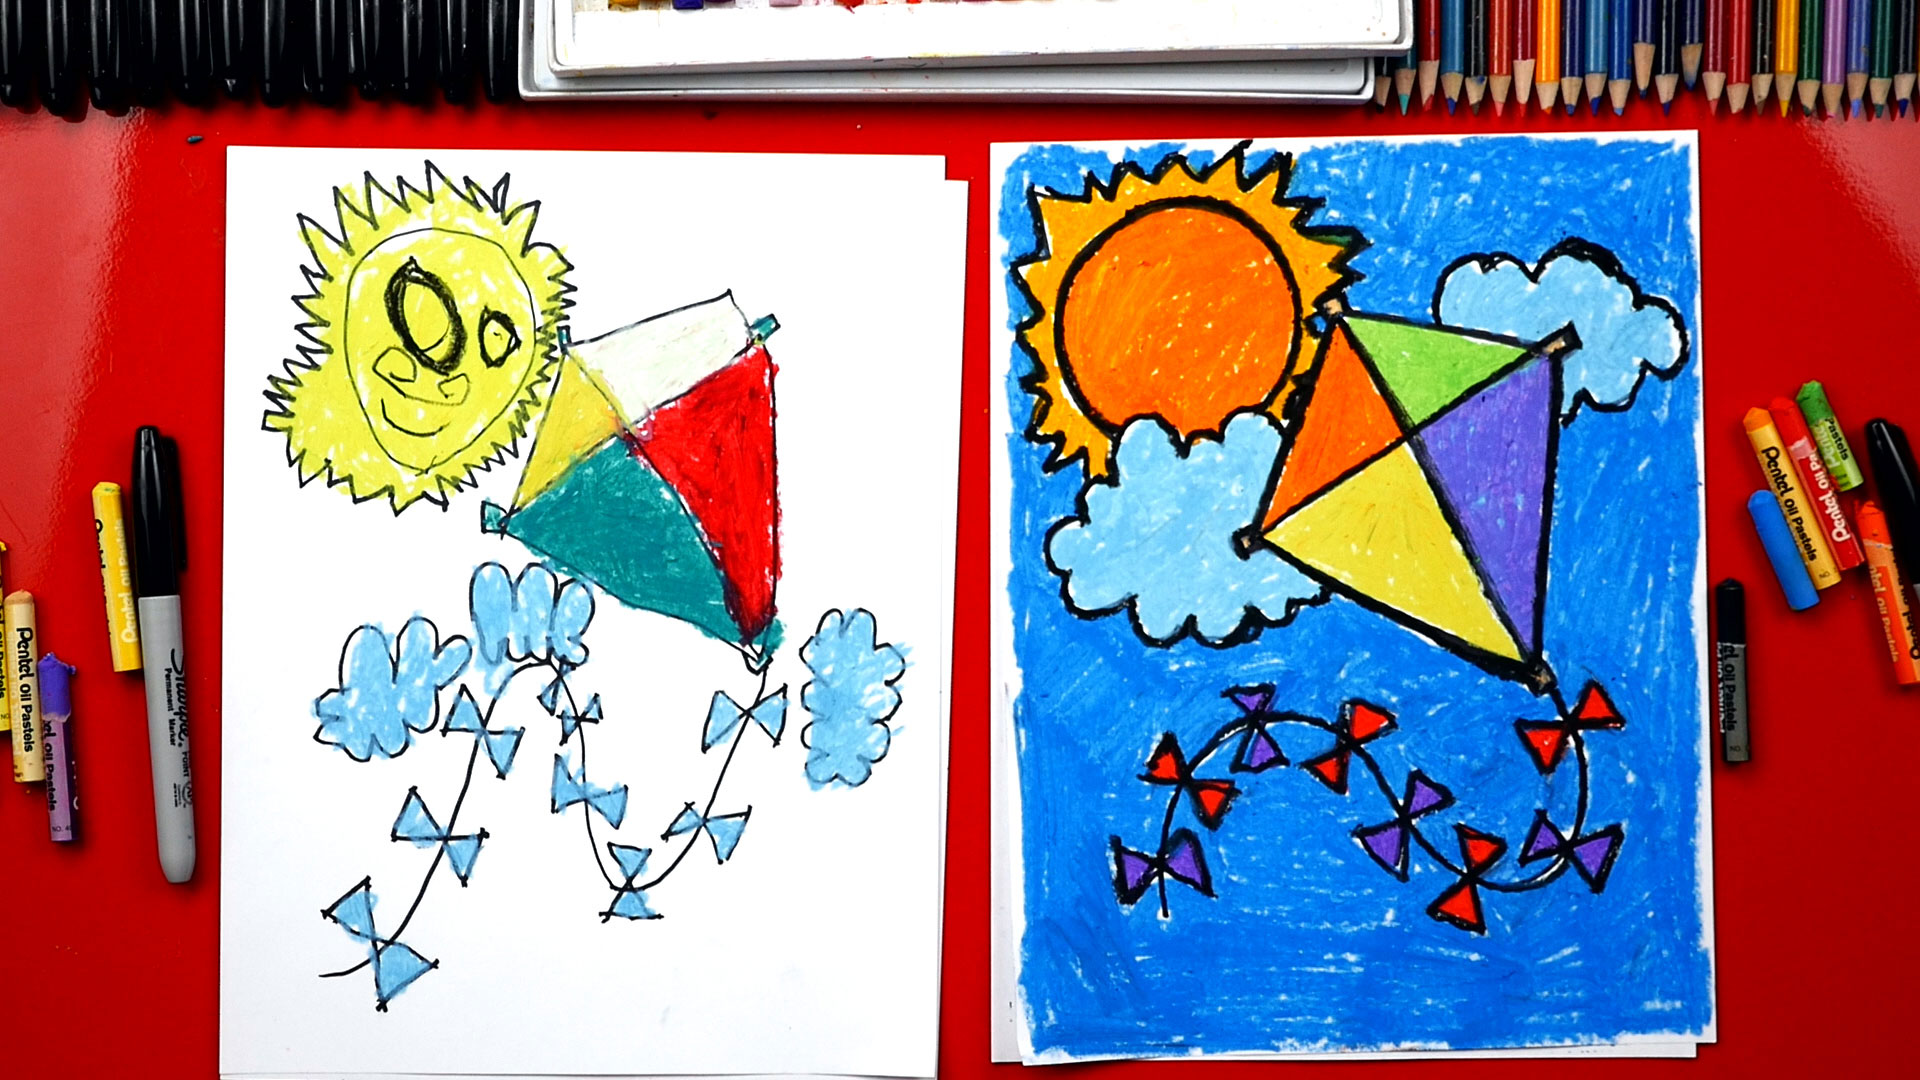 See more ideas about easy drawings, drawings, easy drawings for kids. How To Draw A Kite - Art For Kids Hub